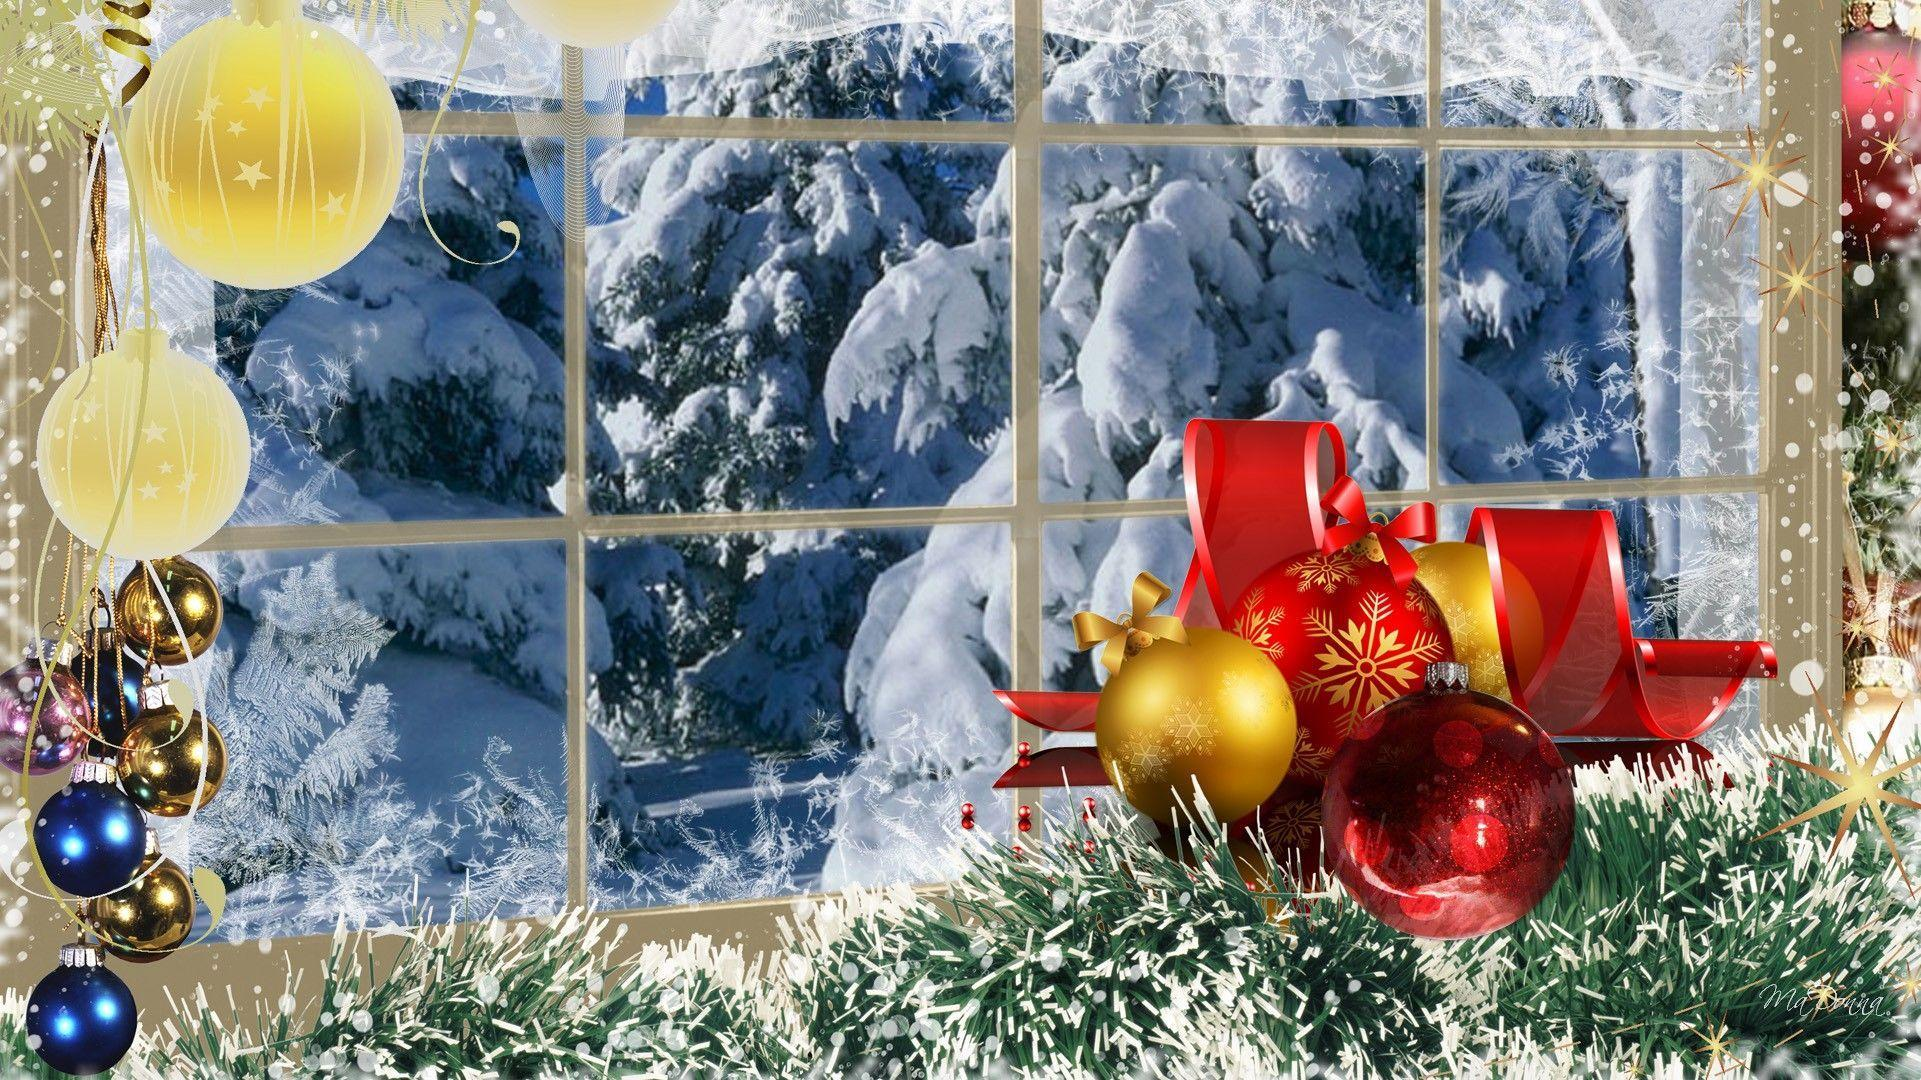 3d winter scenes wallpaper - photo #41